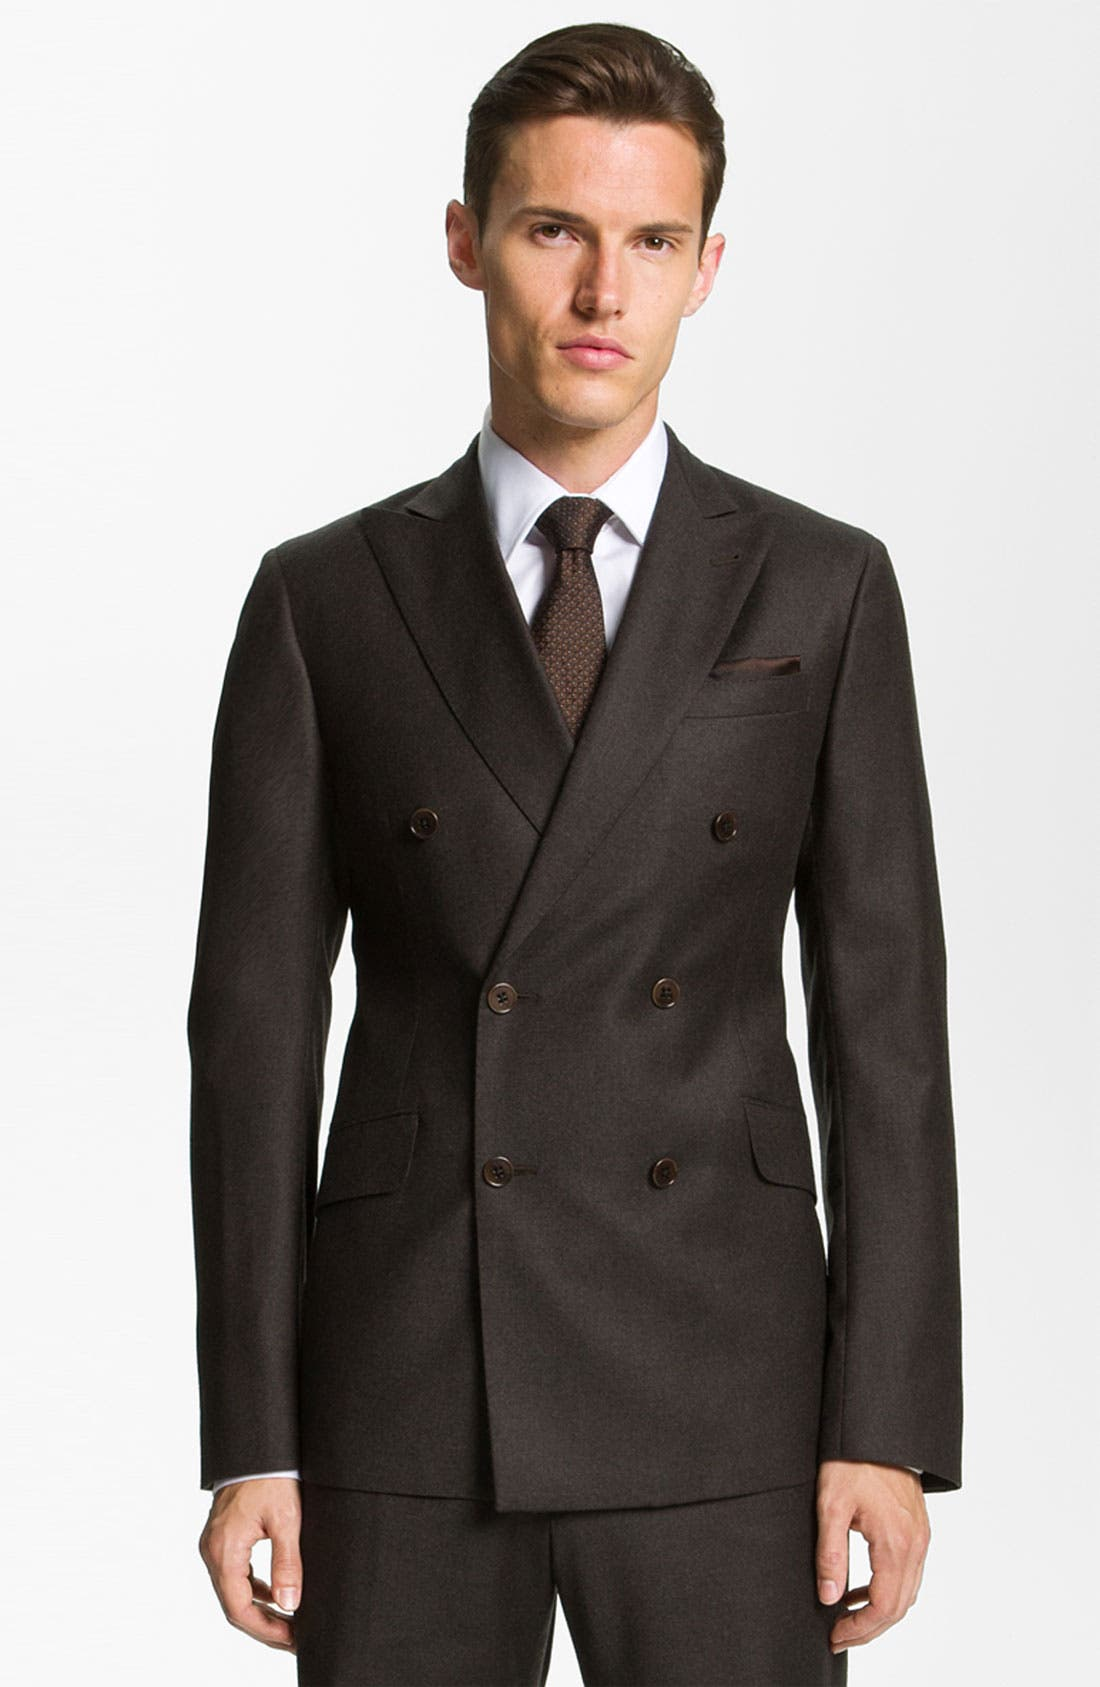 Main Image - Armani Collezioni 'Sartorial' Double Breasted Trim Fit Suit